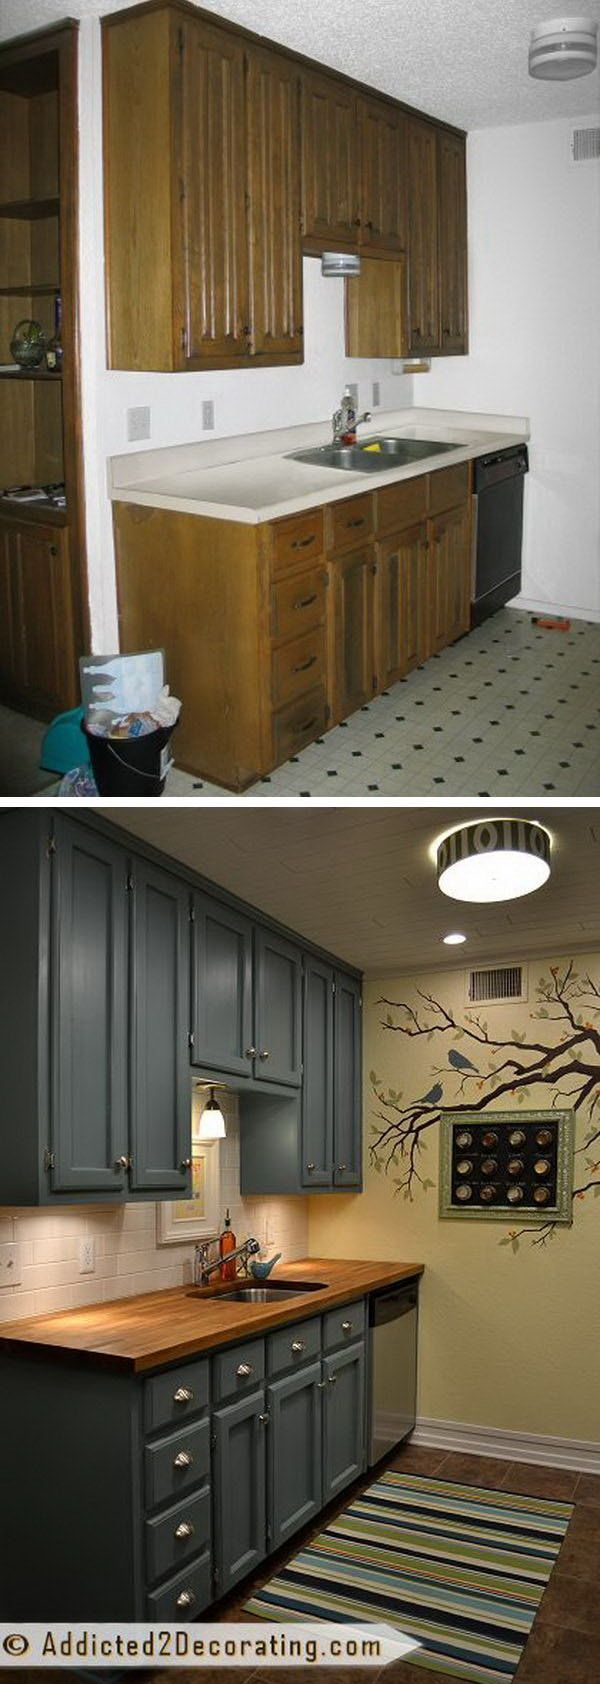 Redo kitchen cabinets cheap - Before And After 25 Budget Friendly Kitchen Makeover Ideas